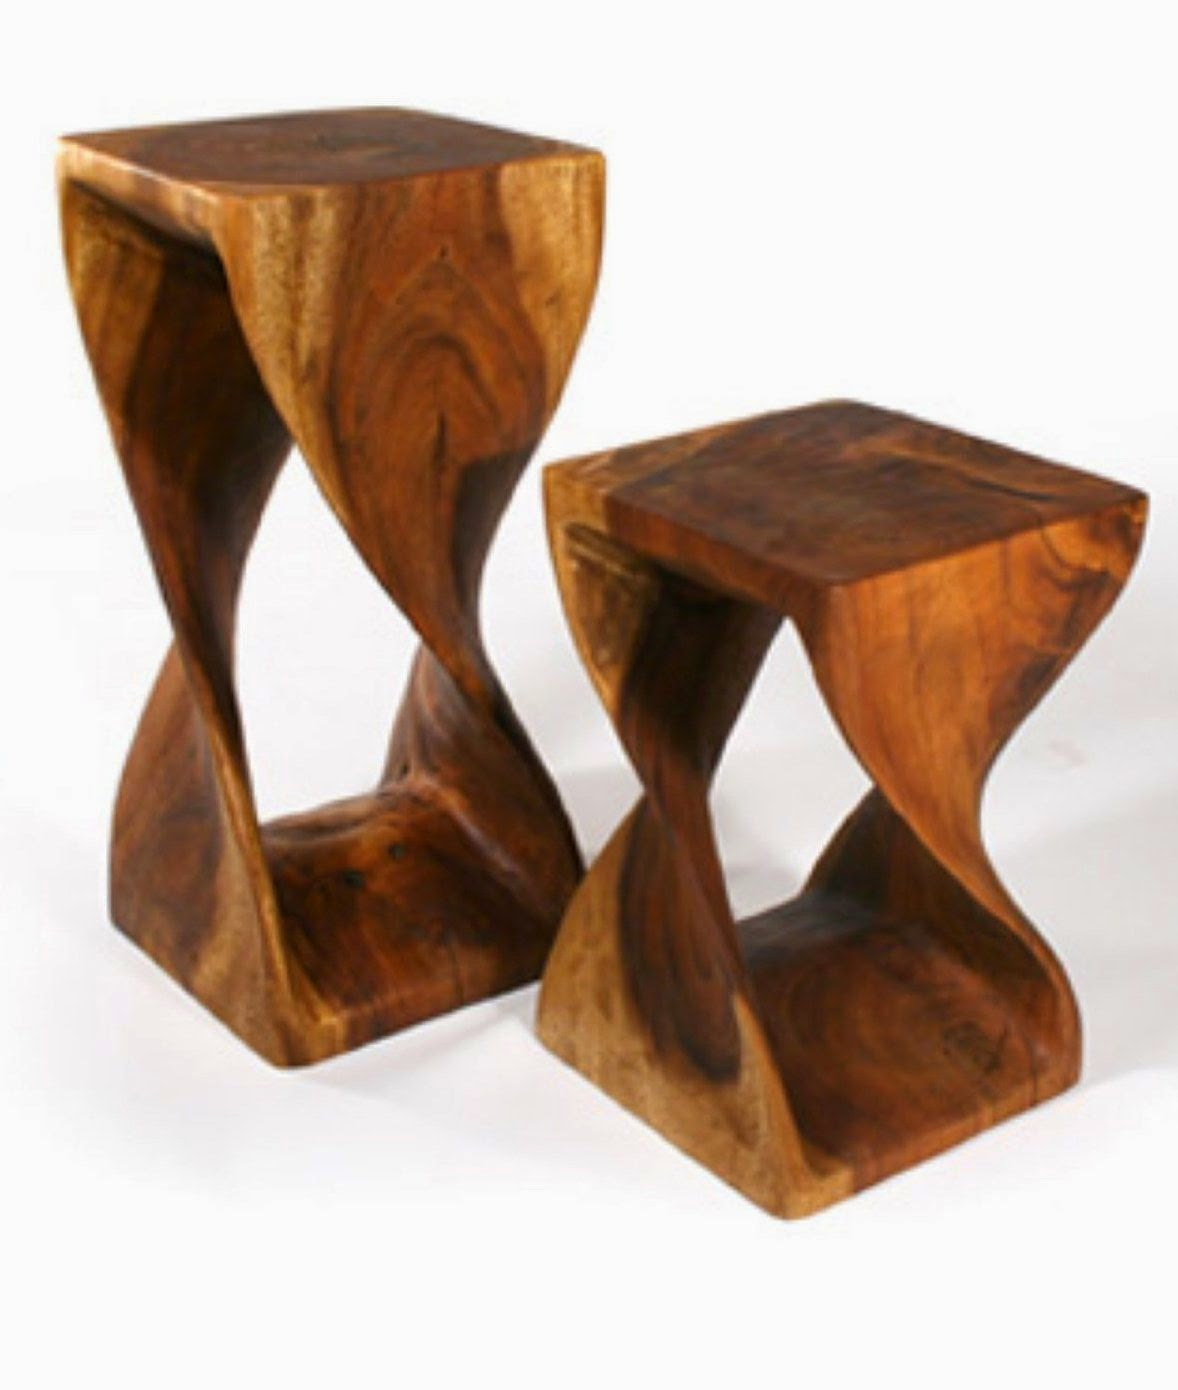 Best Design teak wood stool | Lowest price !: Multi-purpose shower ...